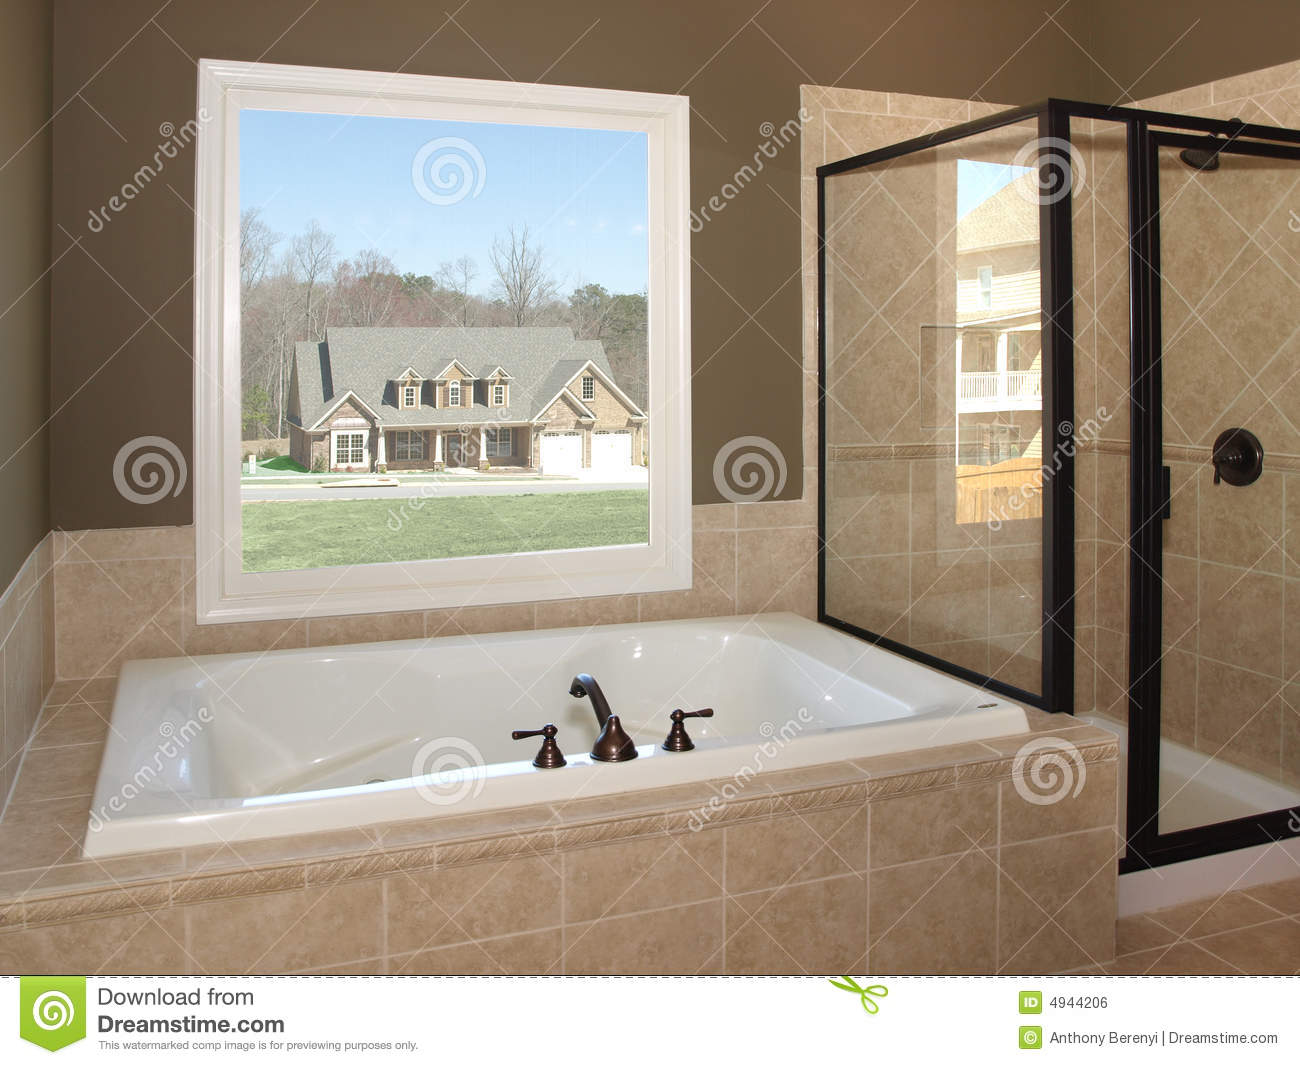 Cuartos De Baño Con Tina:Bathroom Tub Under Window